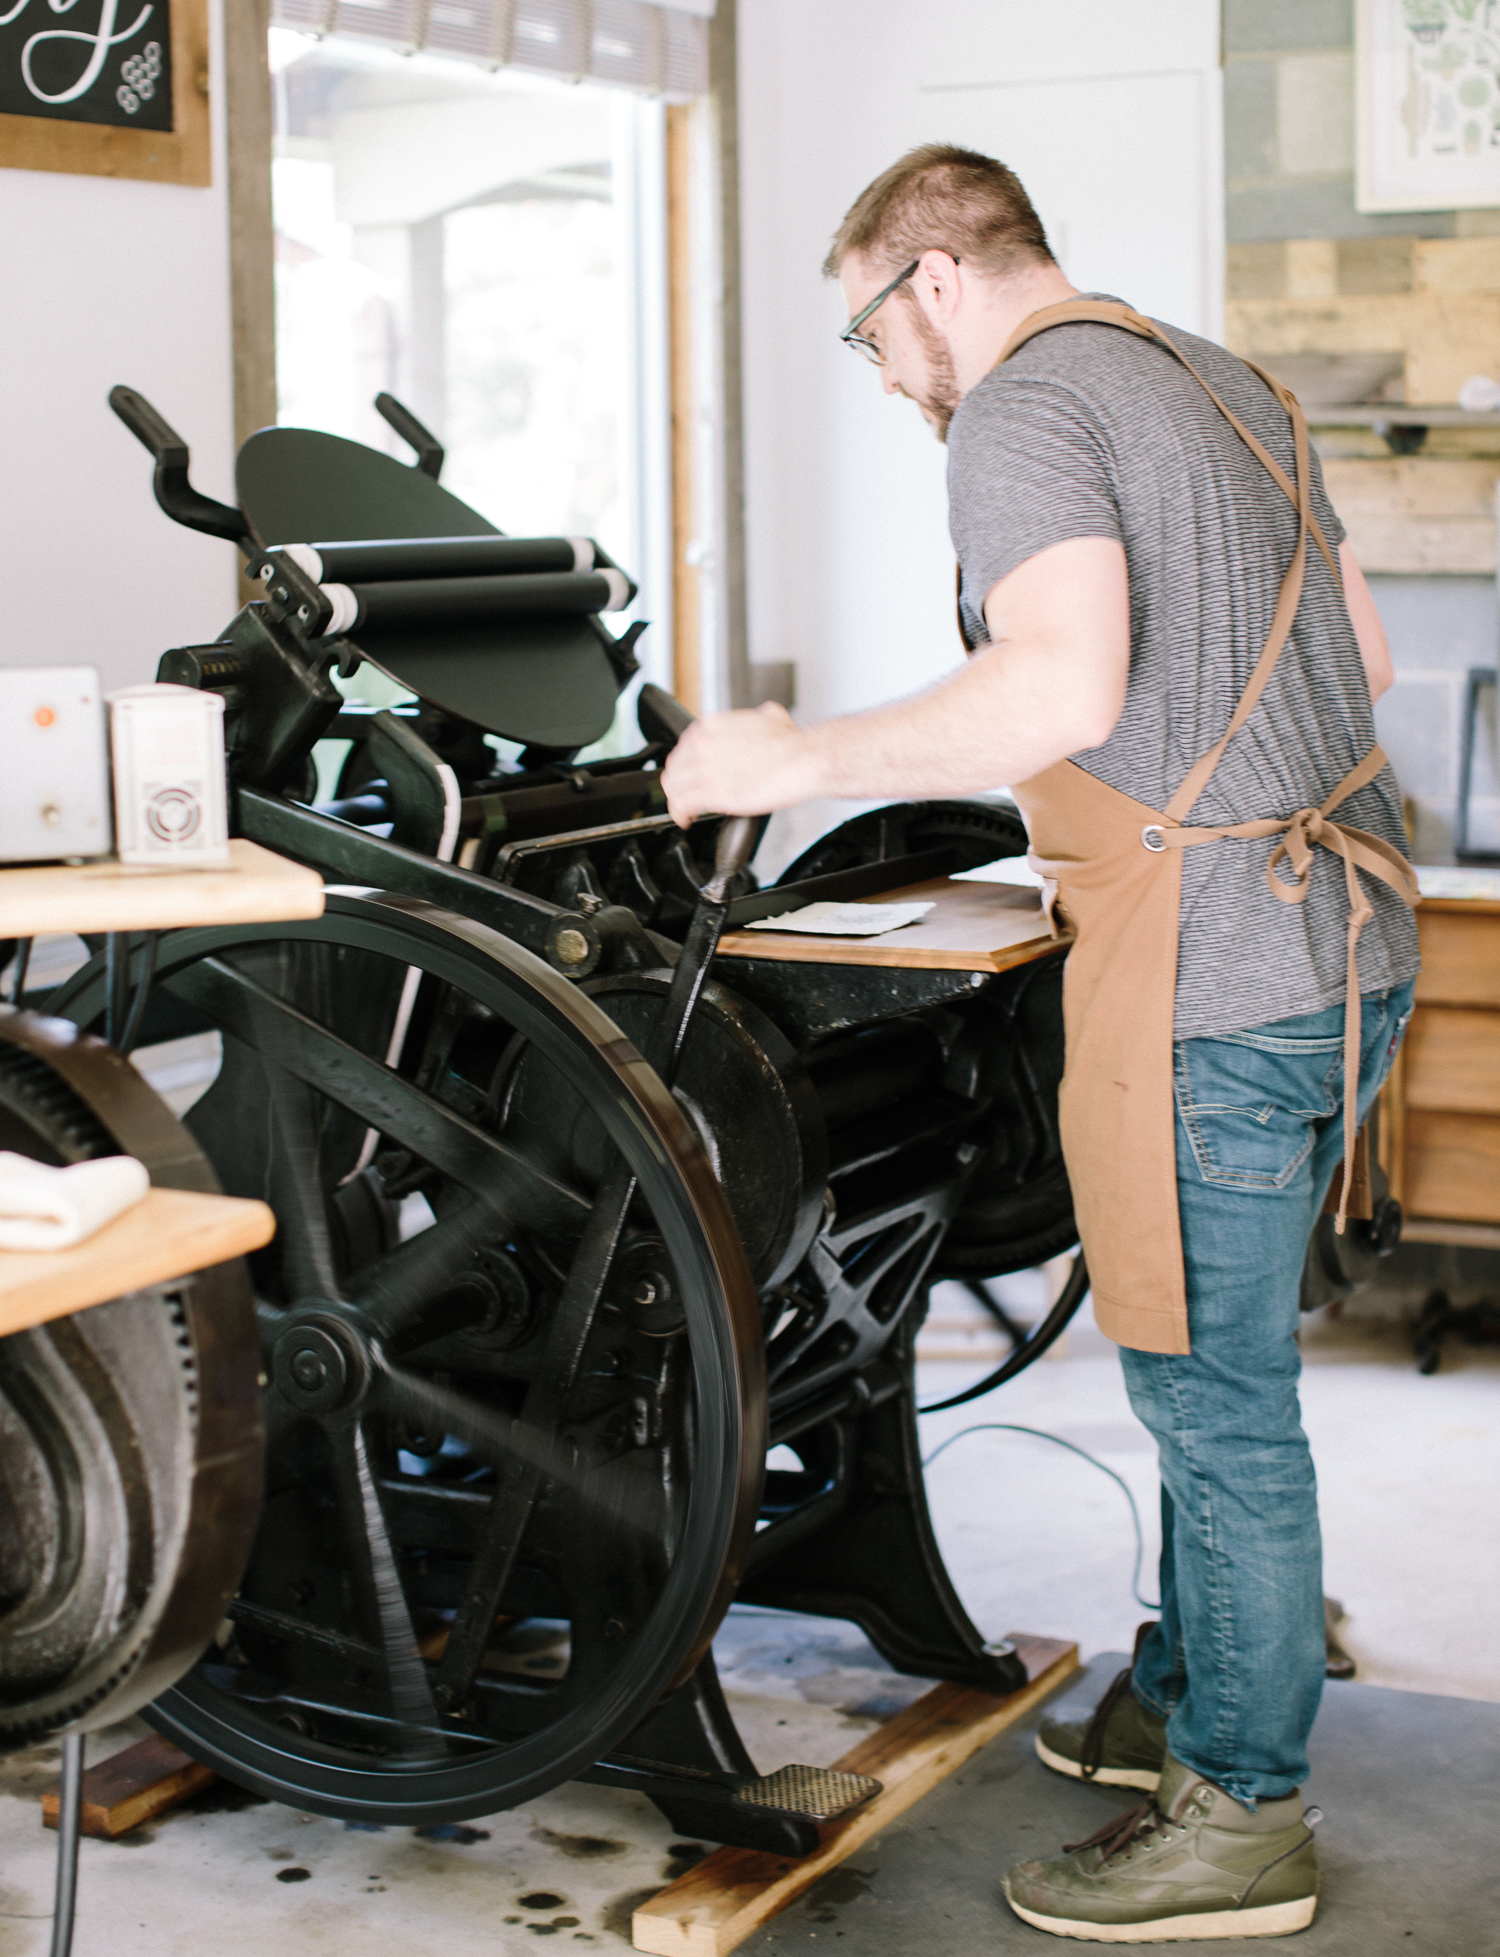 A pressman uses an antique letterpress during brand photography for Paper & Honey letterpress studio in Michigan